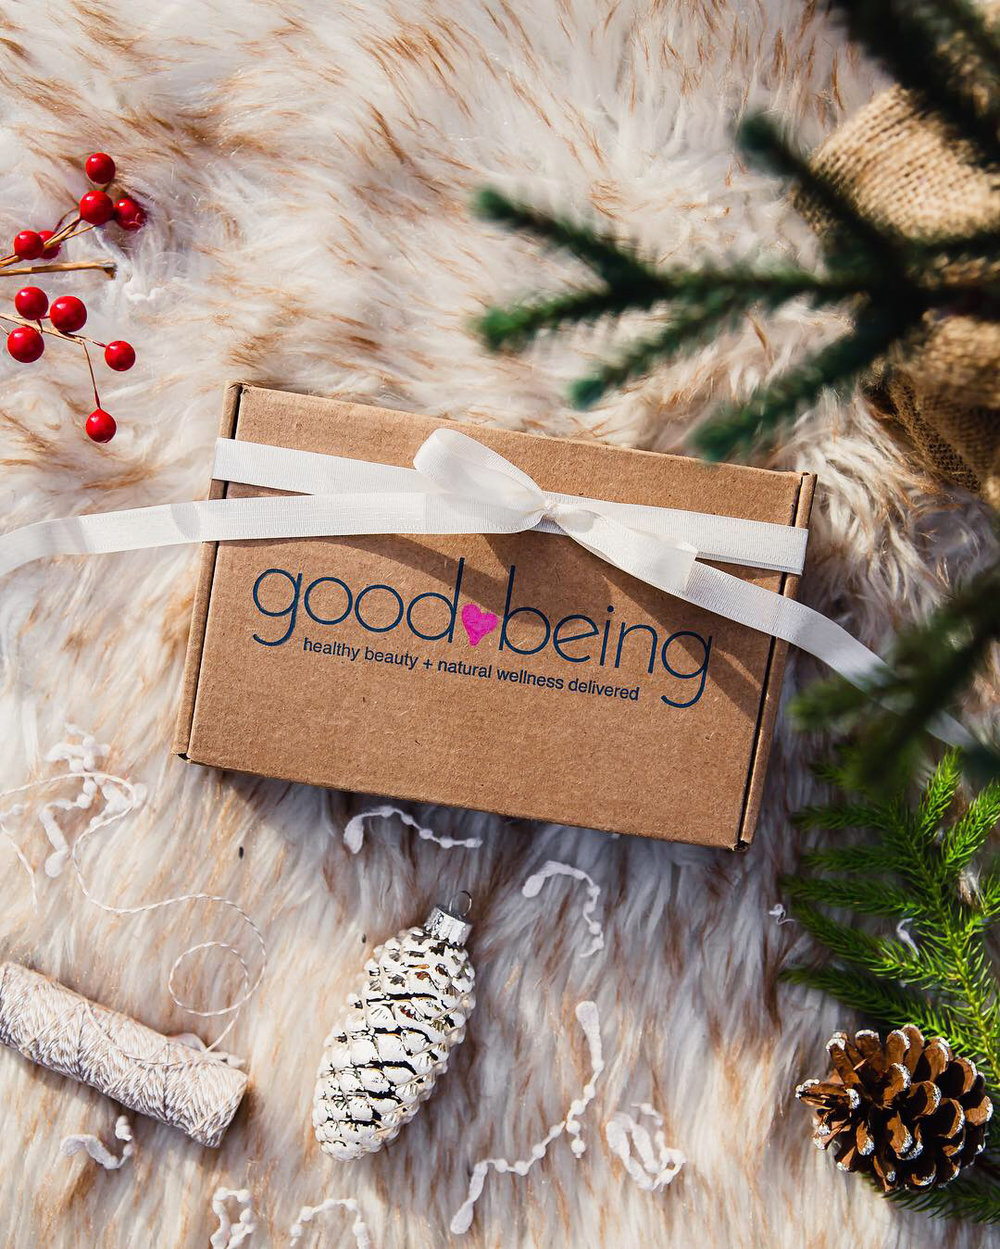 GoodBeing Nautral Beauty Subscription Box